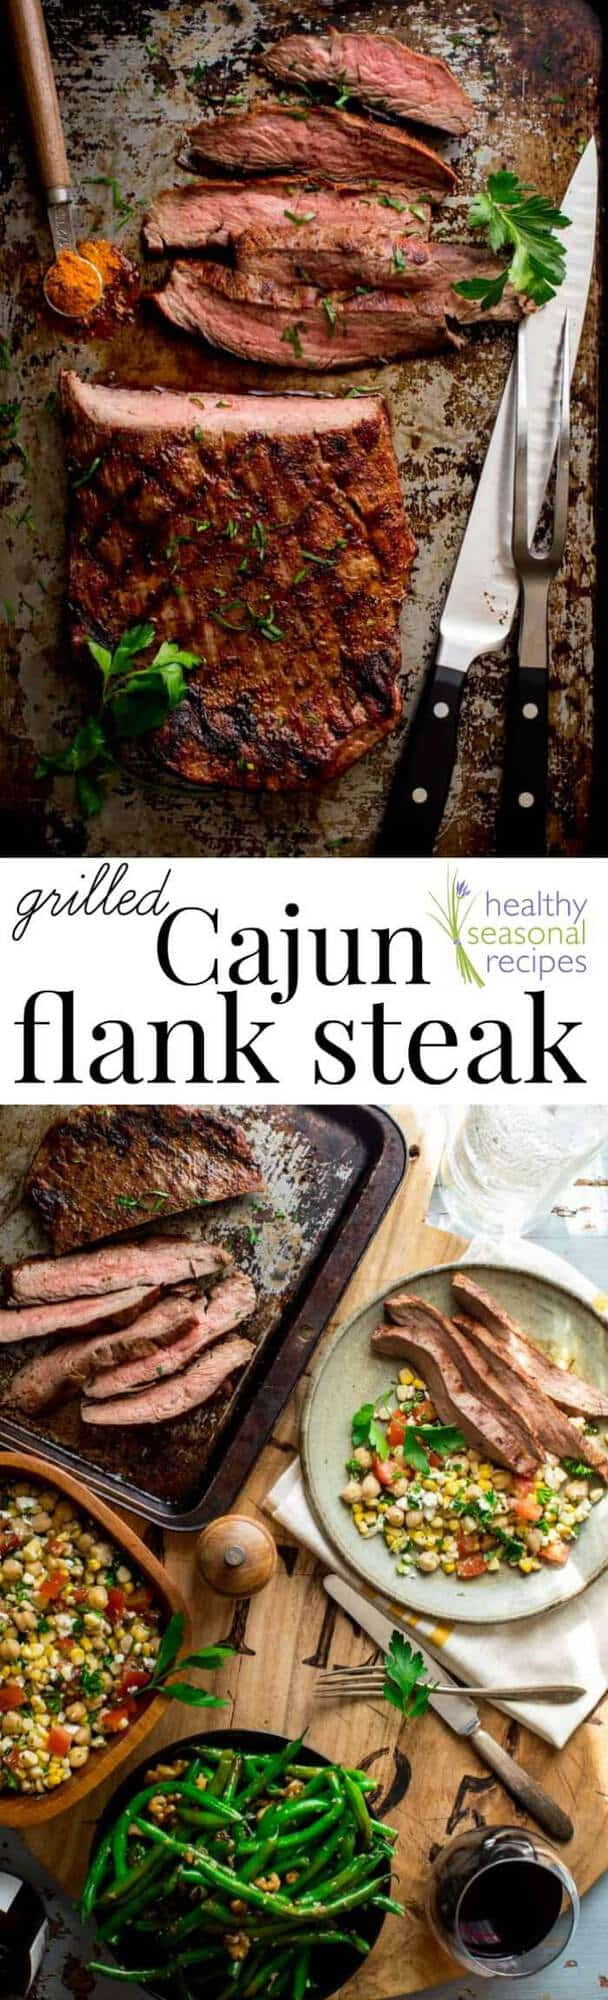 With just 3 ingredients this Cajun Flank Steak needs to be on your summer grilling menu! The incredible flavor from this super simple recipe will blow your mind! AND it's gluten free, low carb and paleo! | Healthy Seasonal Recipes #beef #paleo #primal #glutenfree #lowcarb